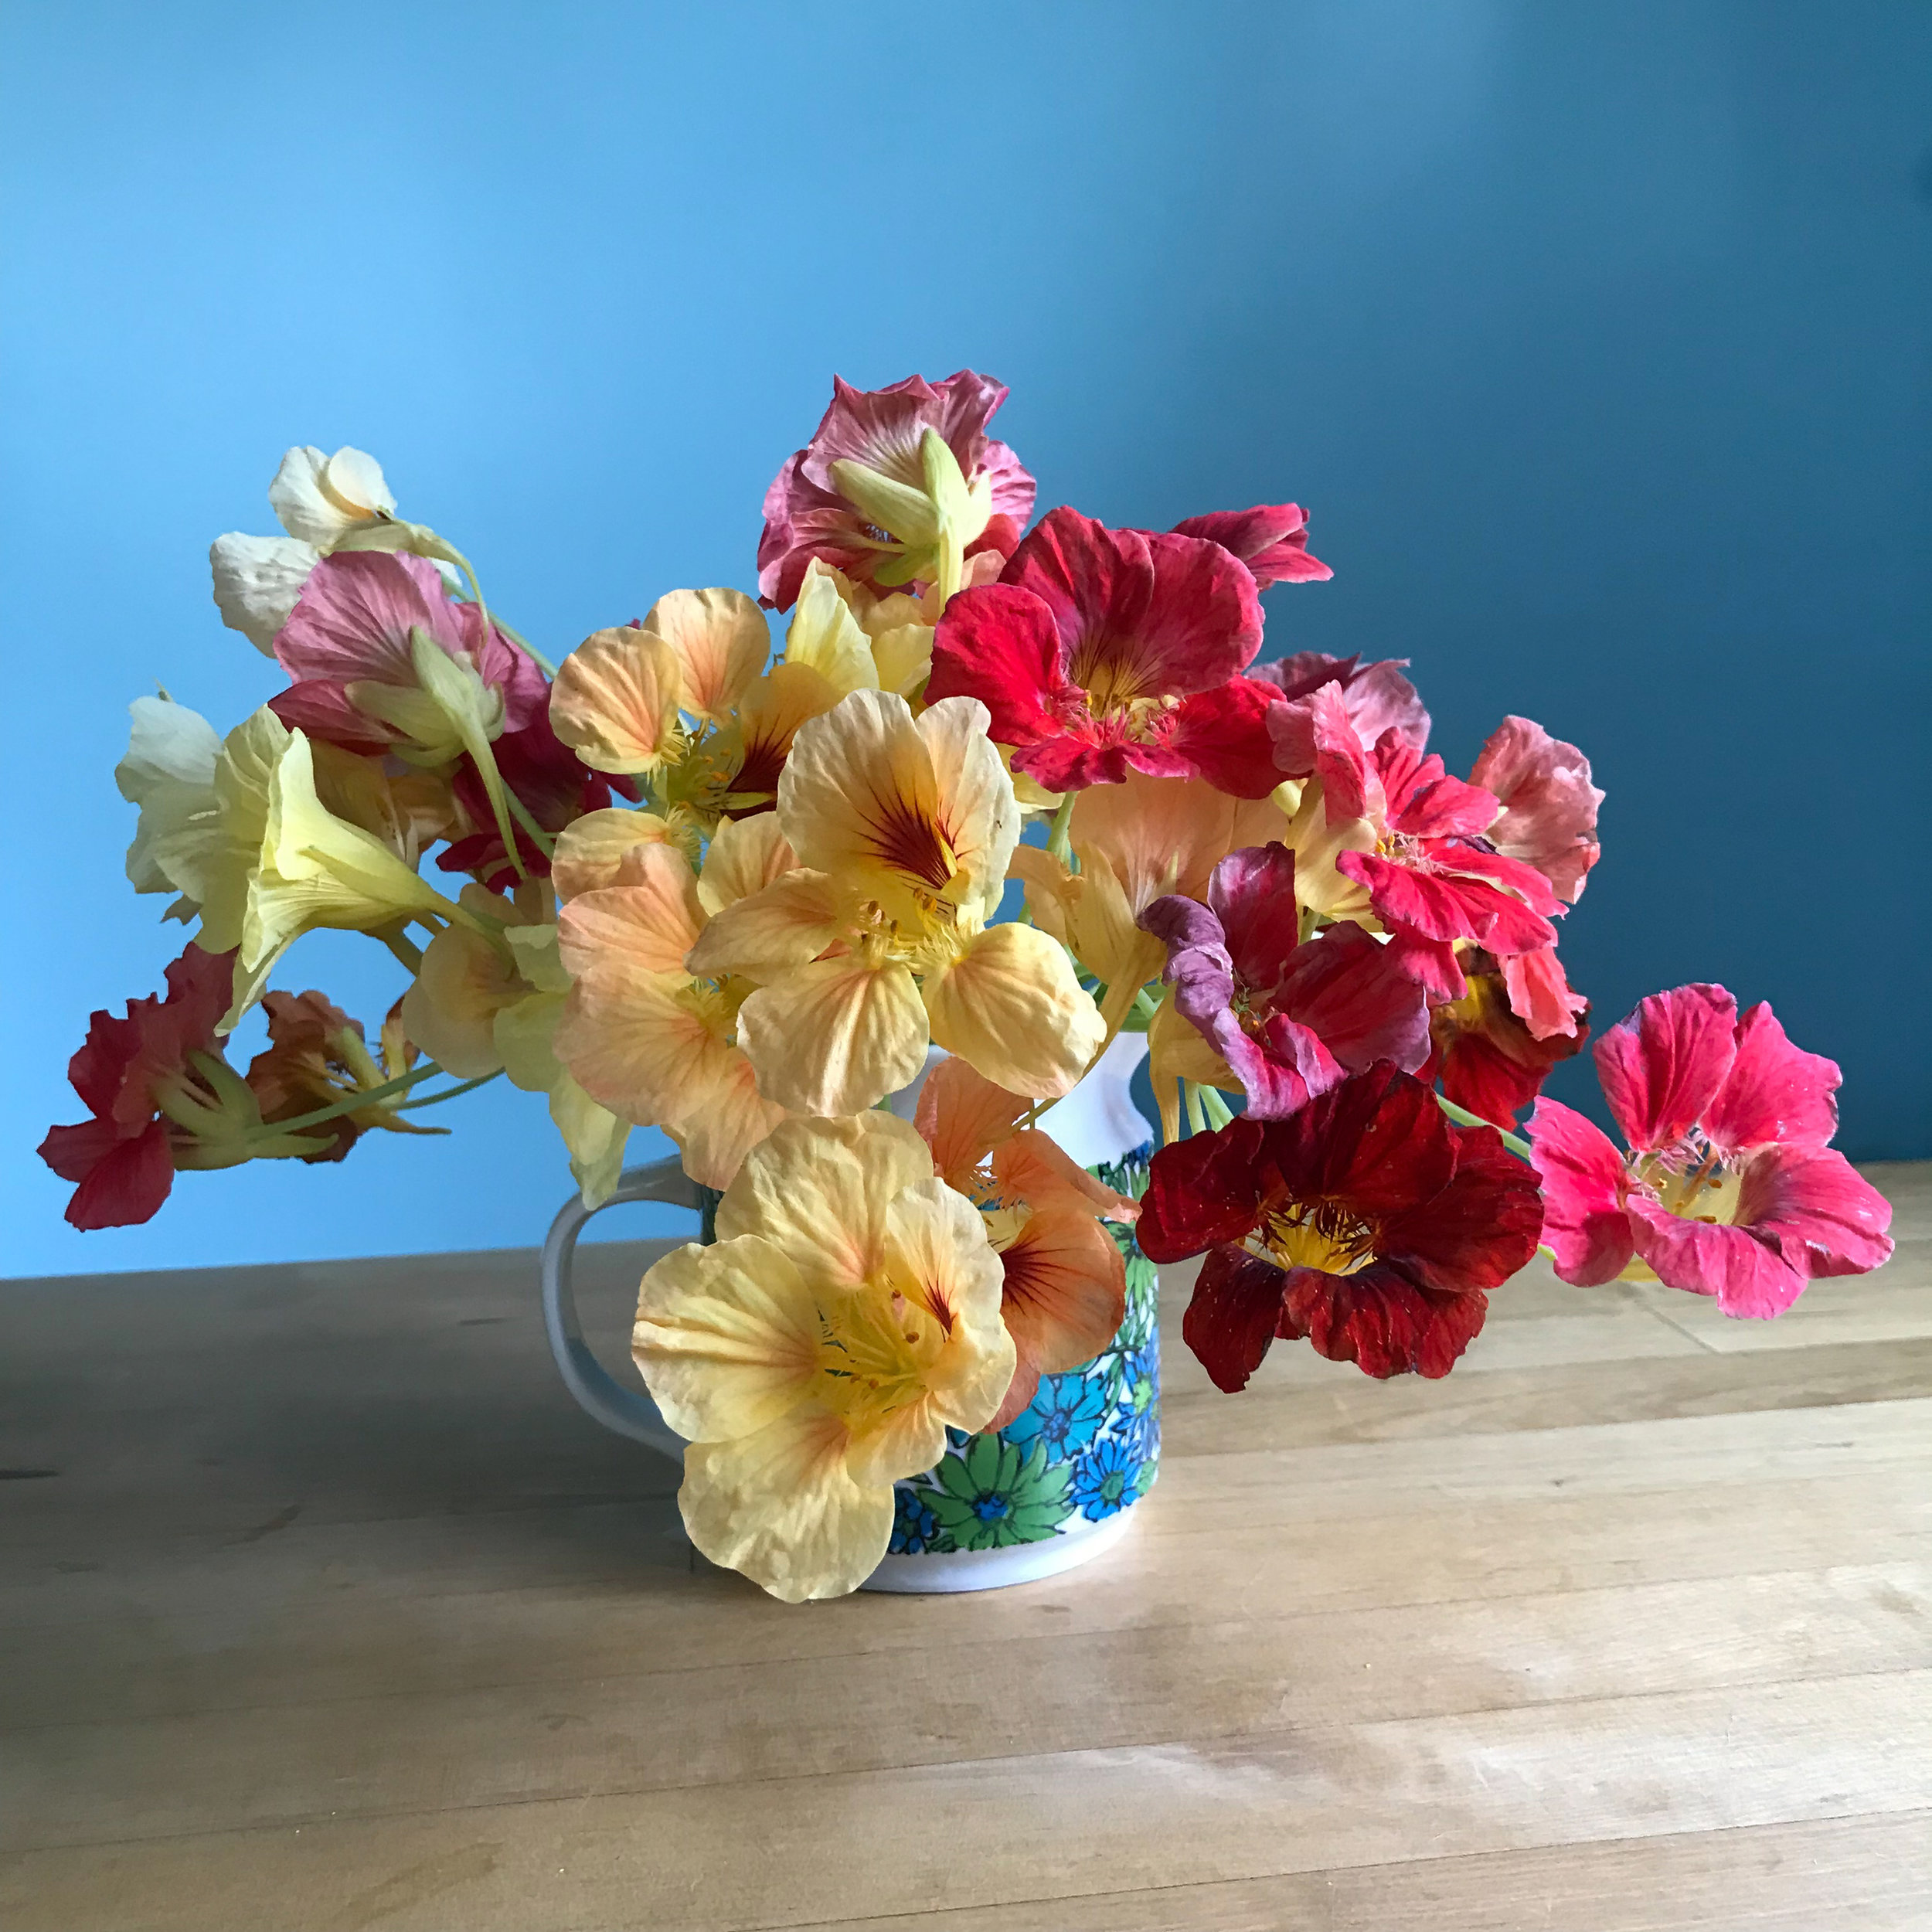 A Mug Filled with a Colorful Bunch of Nasturtium Flowers